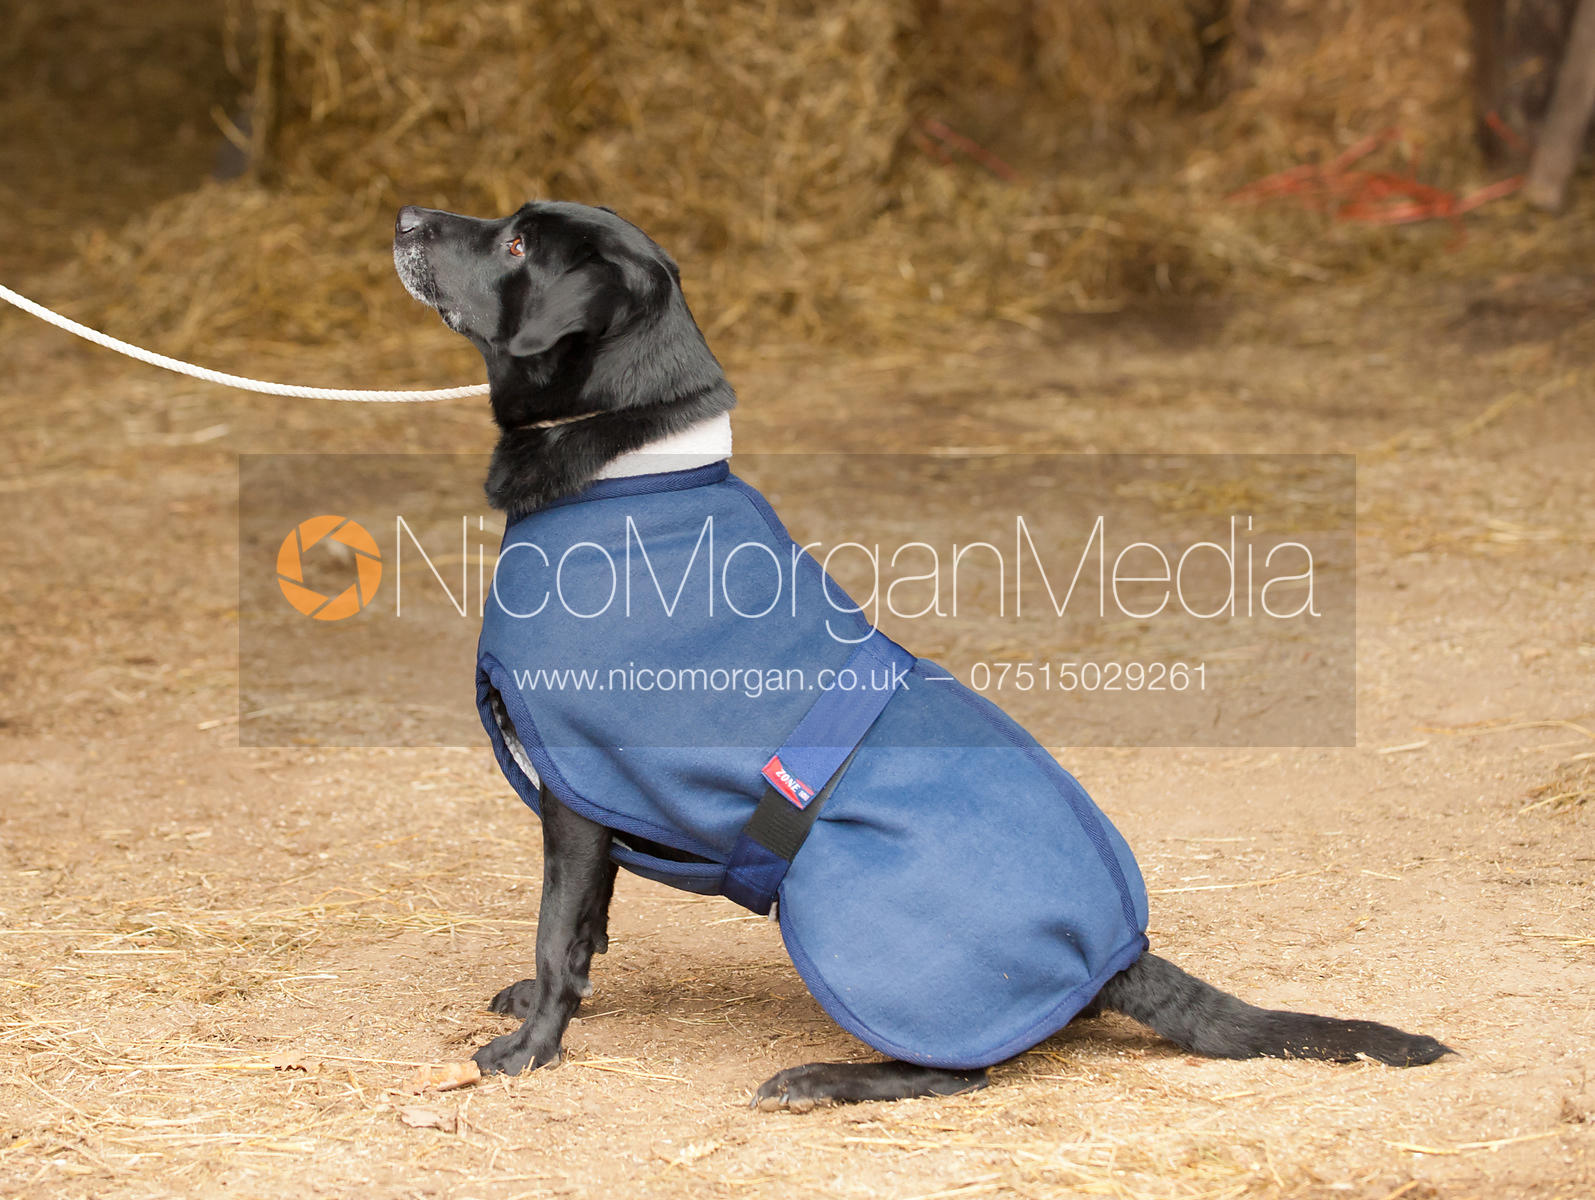 Black Labrador dog wearing sheepskin coat